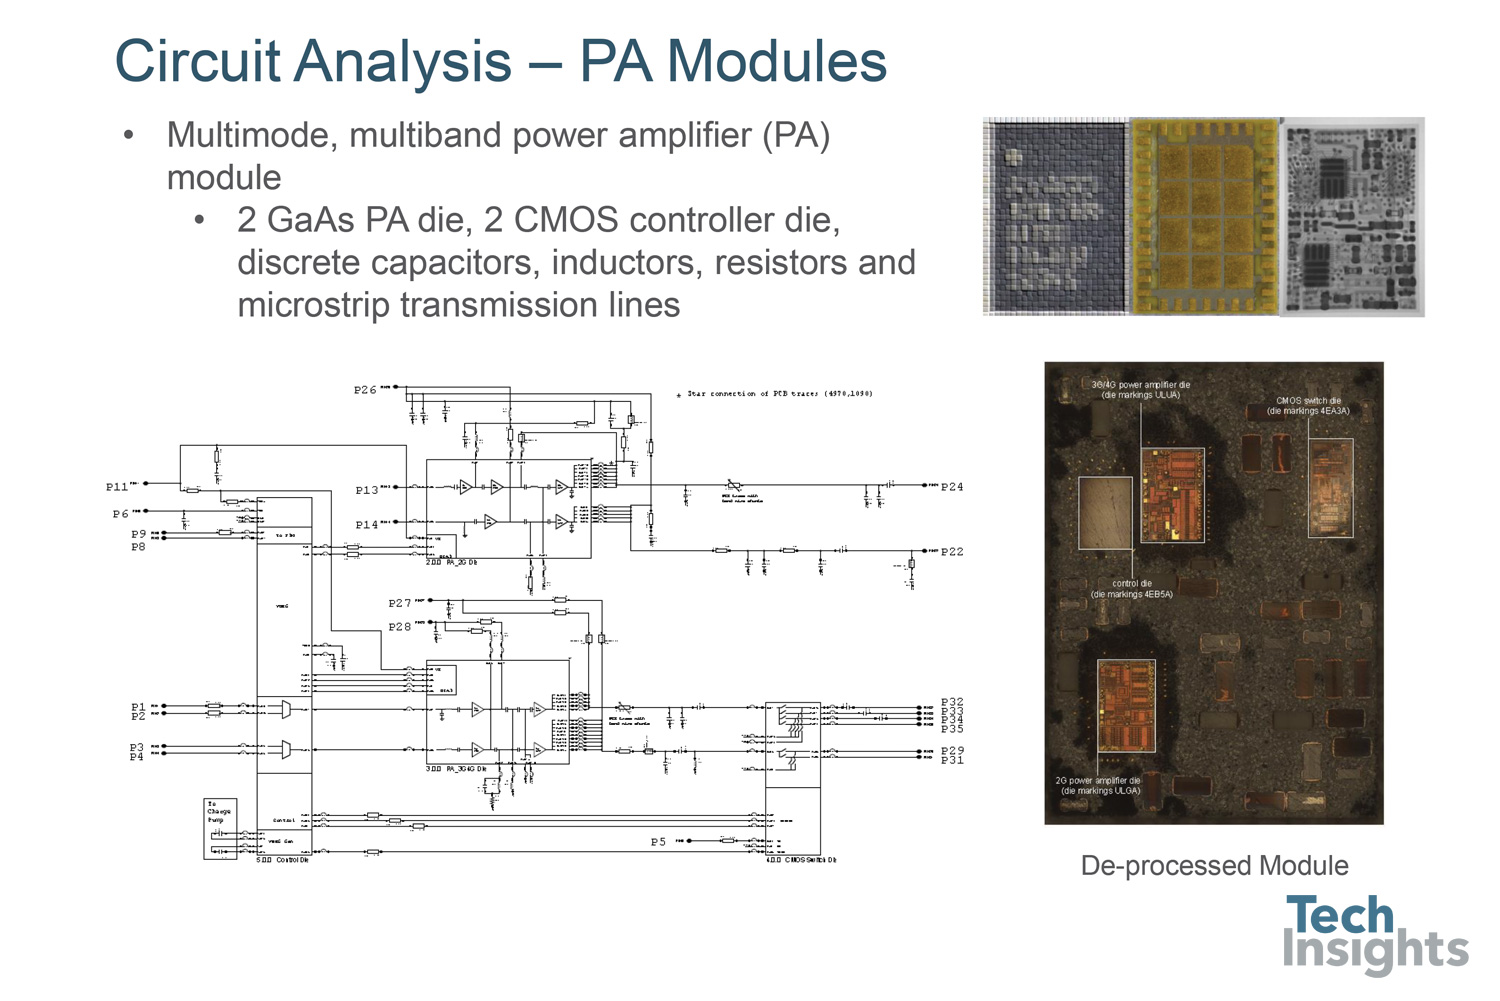 Circuit analysis of a power amp module. This analysis examines the various chips within the module at the transistor level, as well as re-creating the system level schematic of the module as a whole